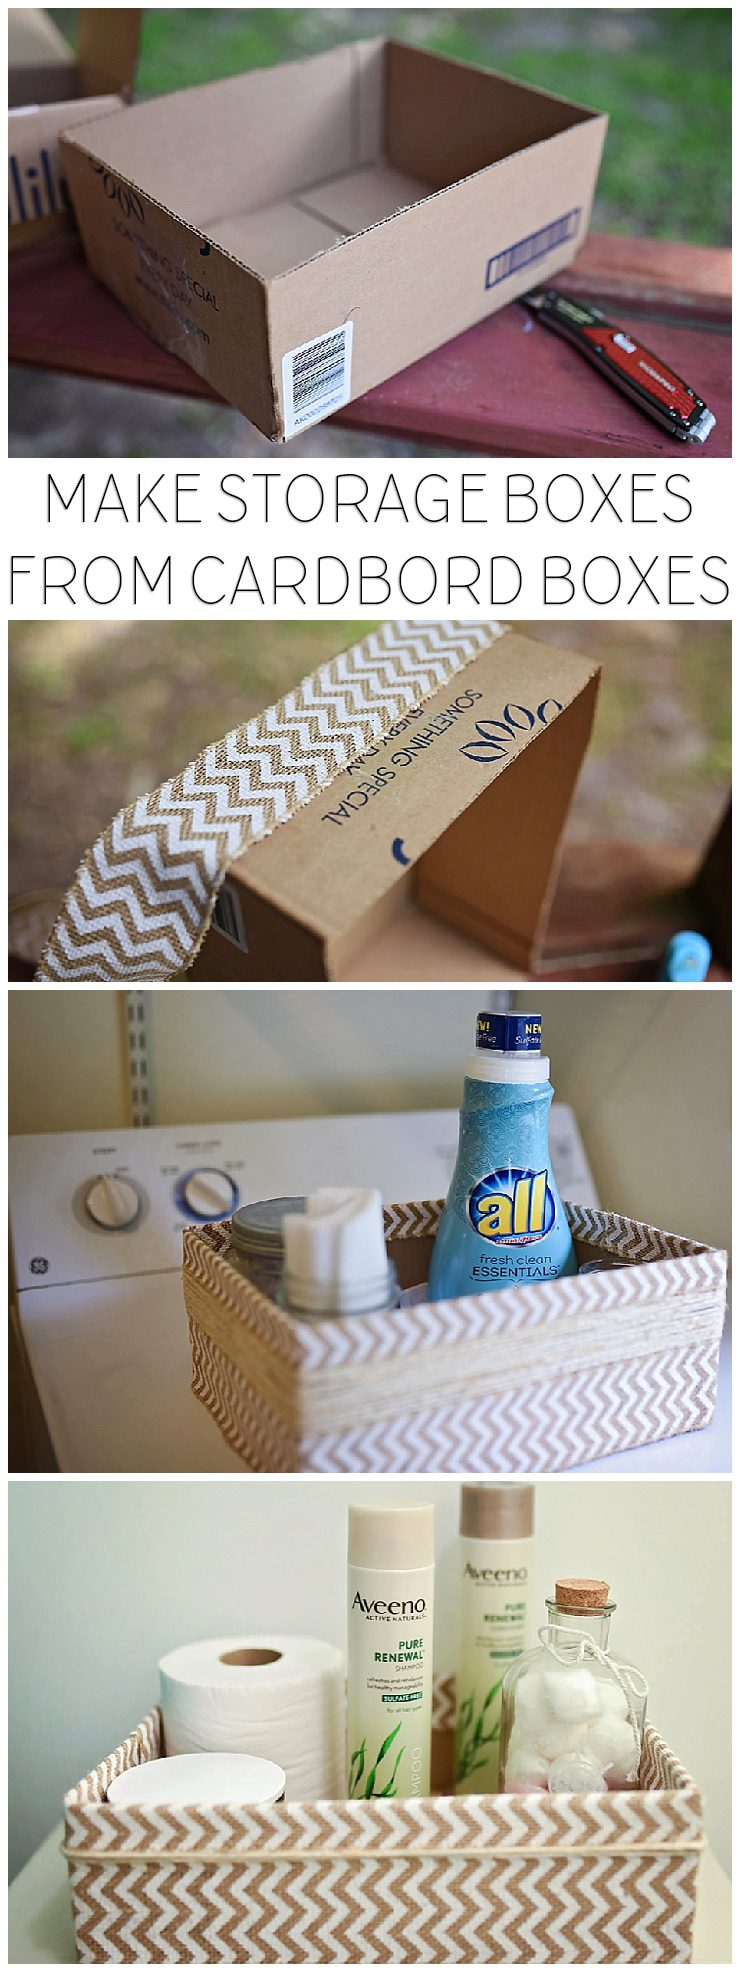 Upcycled Cardboard Boxes Into Storage Boxes